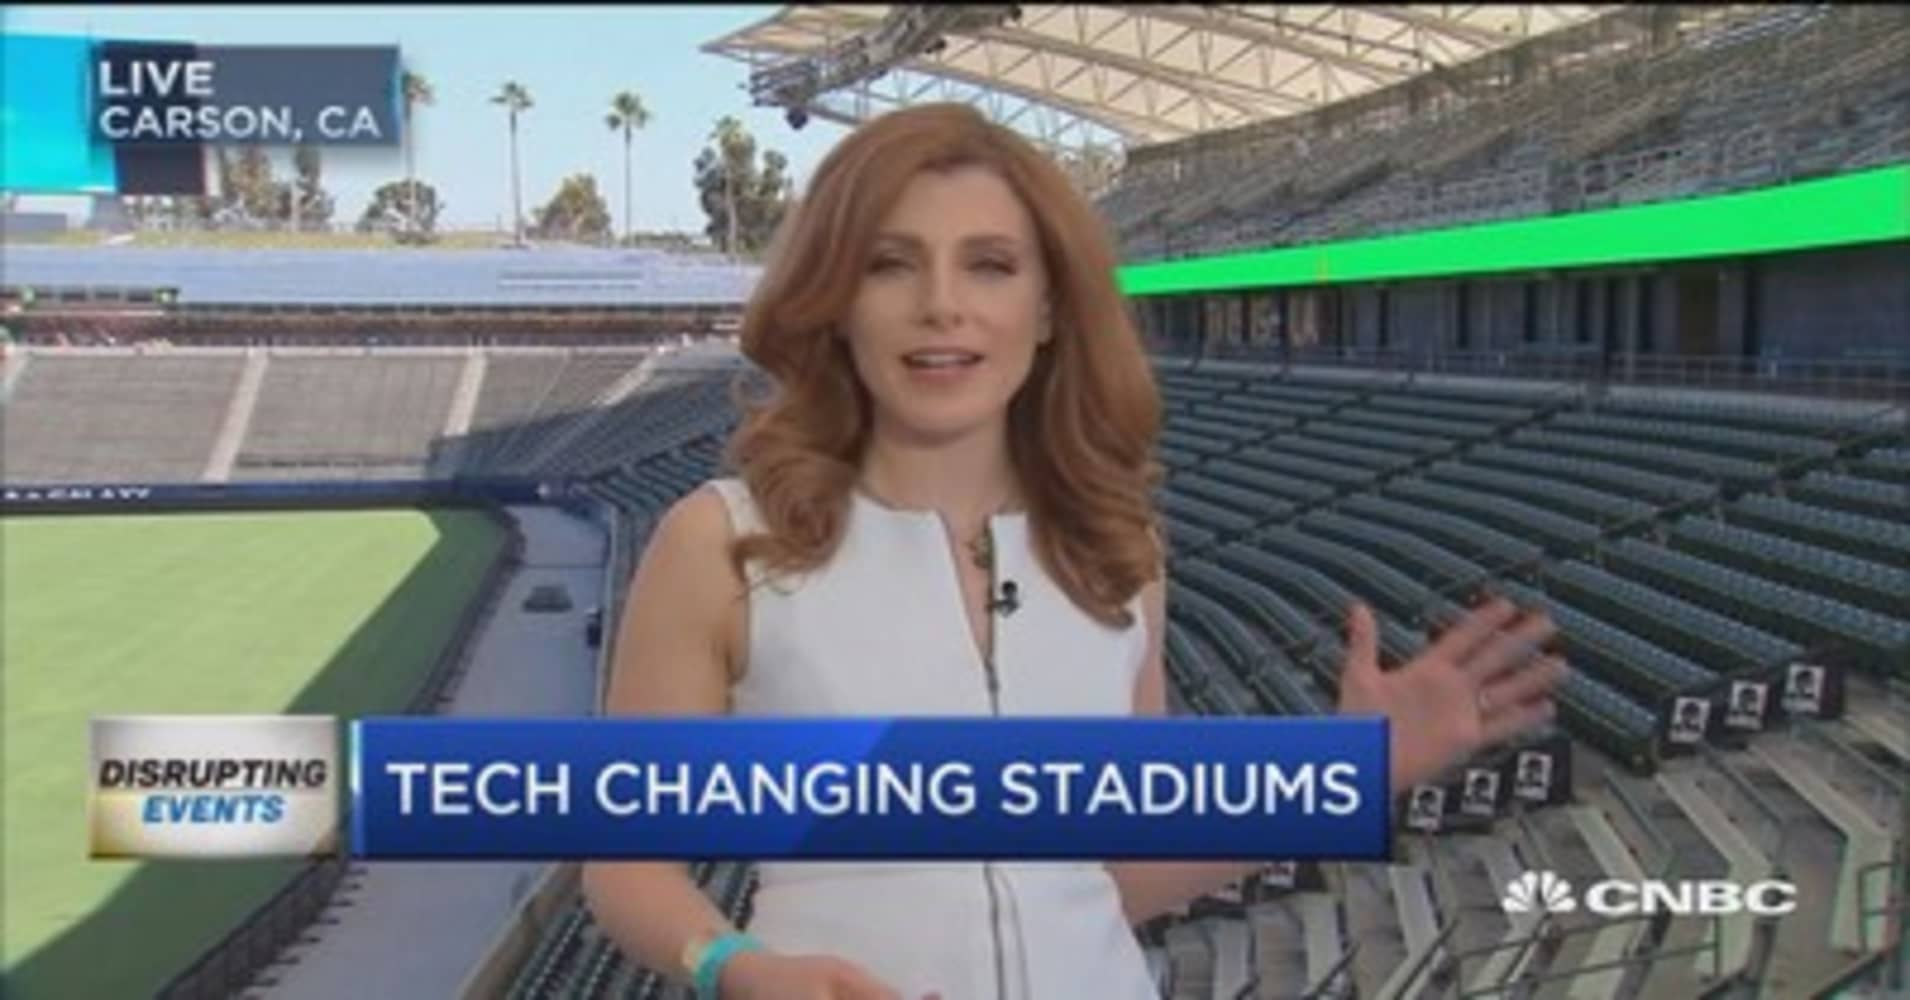 Smart stadiums are giving ticket-holders a worthwhile experience